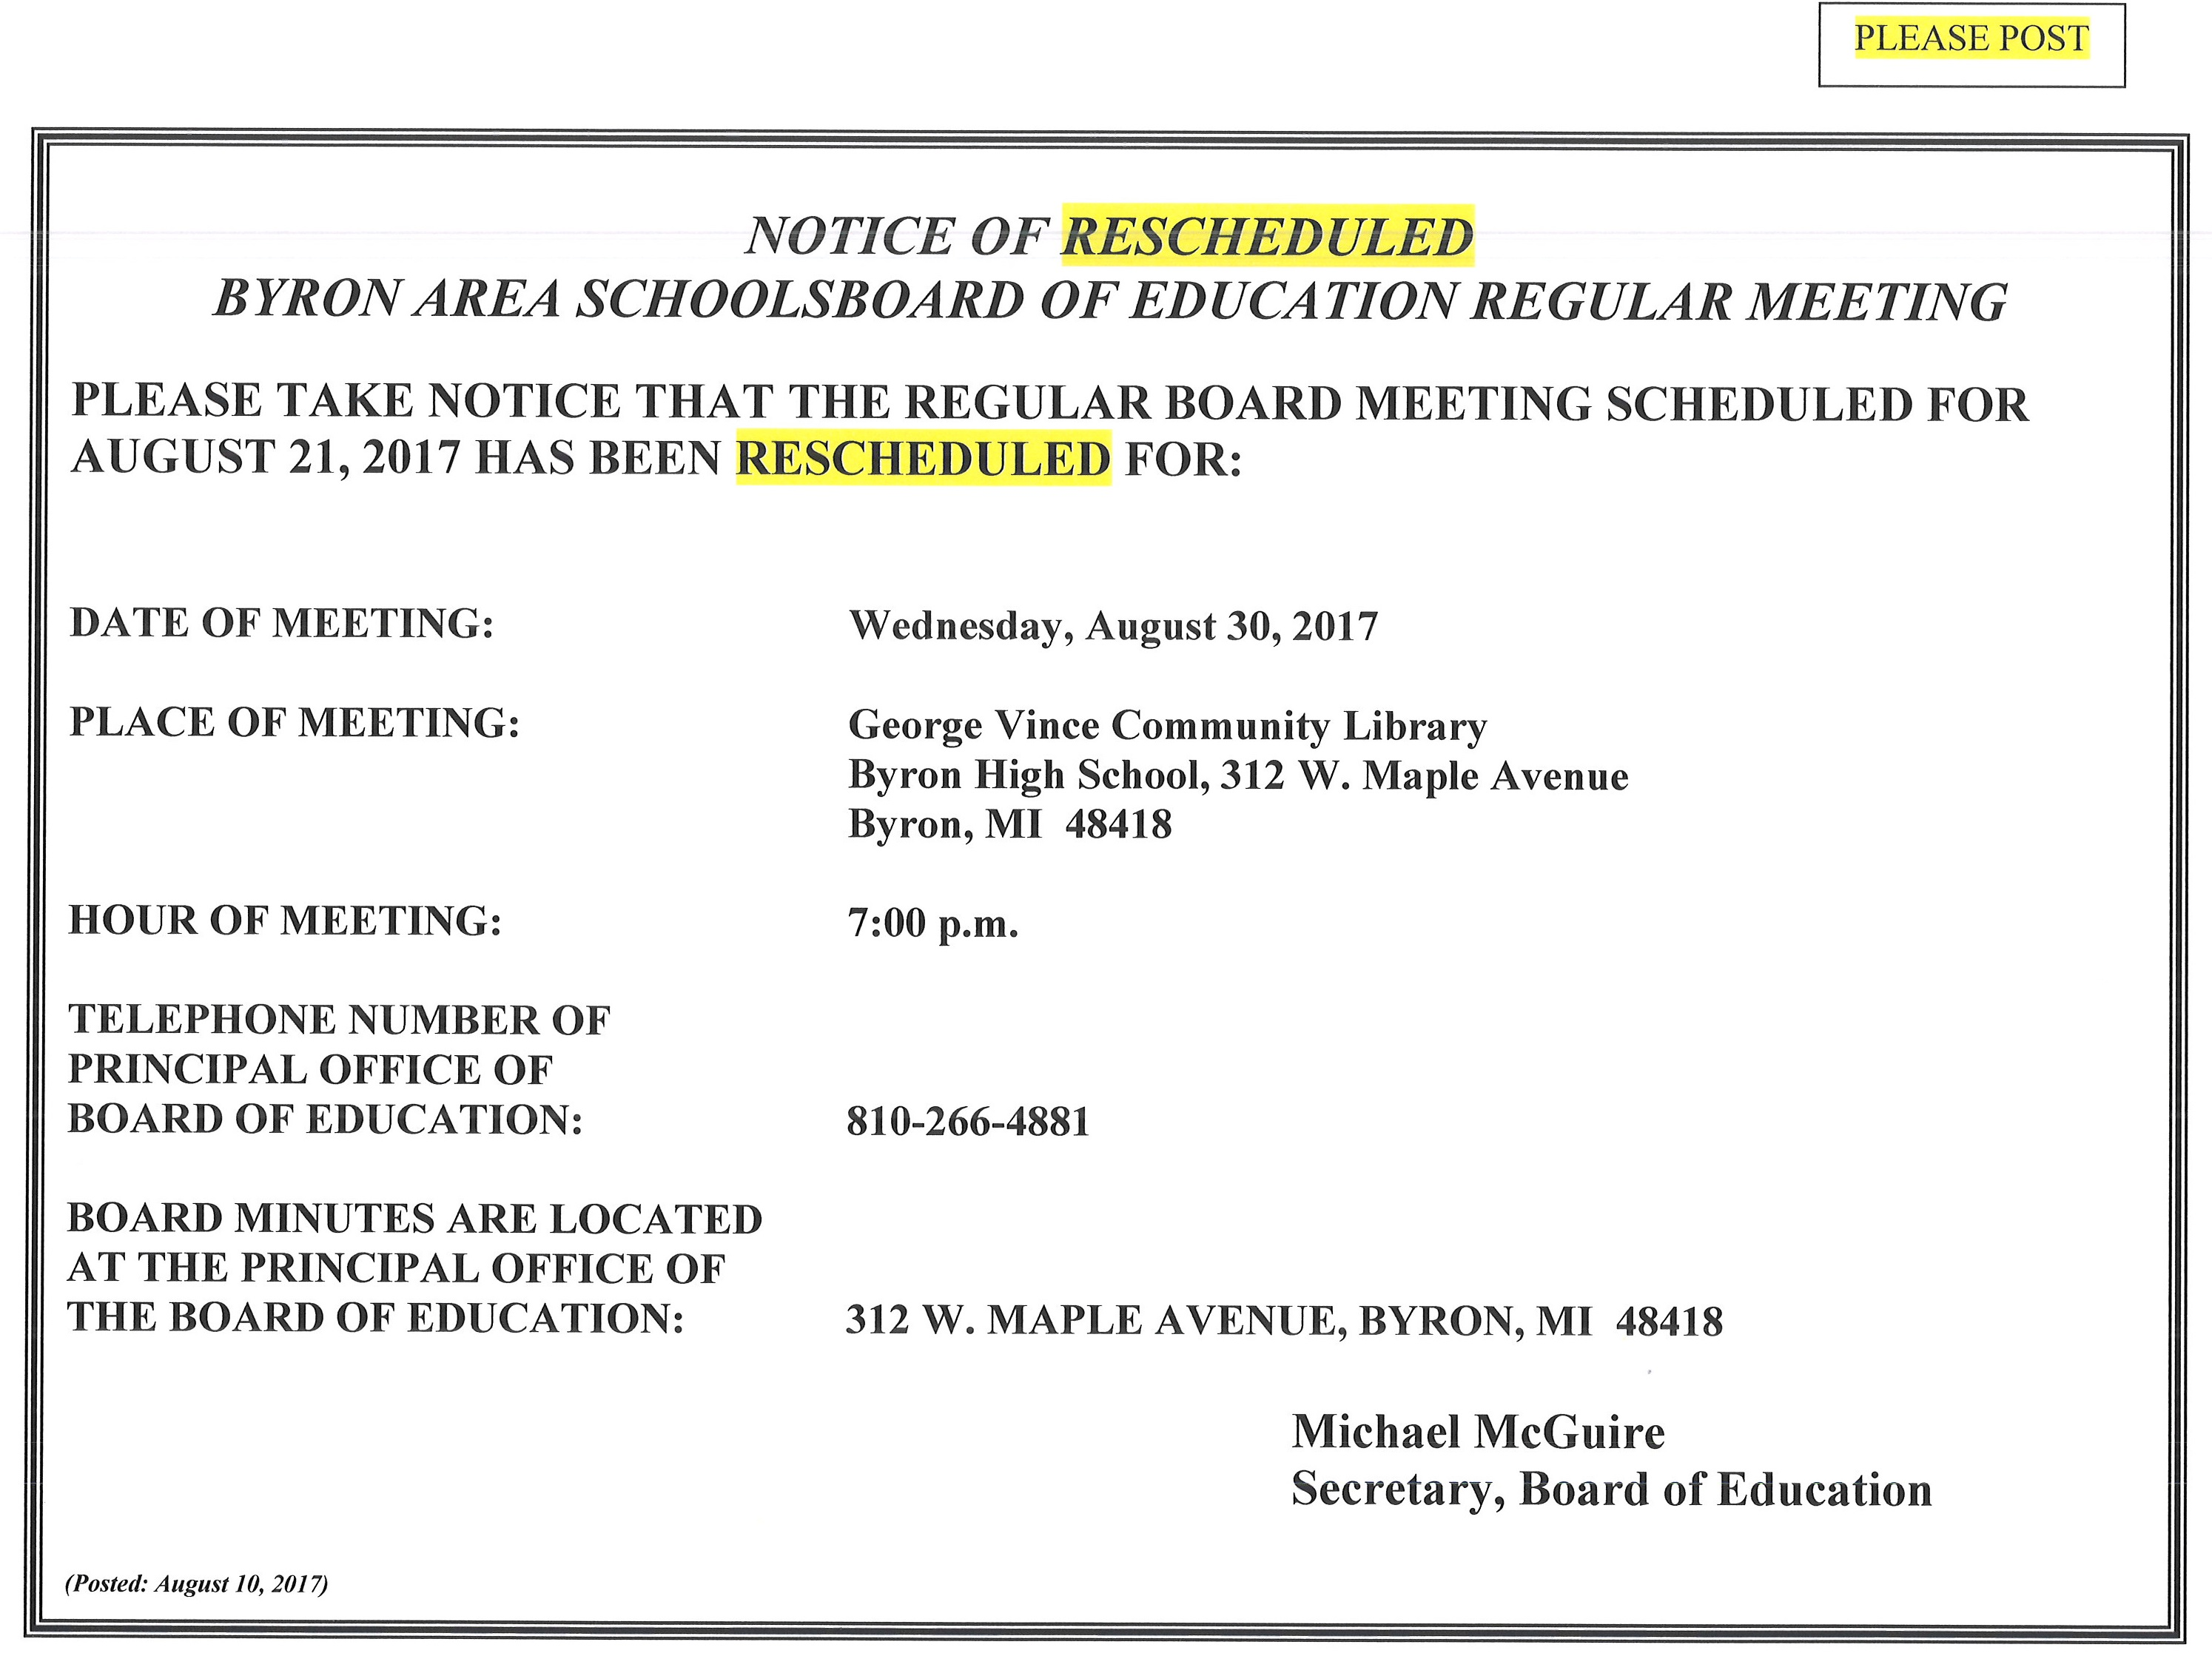 Rescheduled Board Meeting Notice - will be held August 30 2017